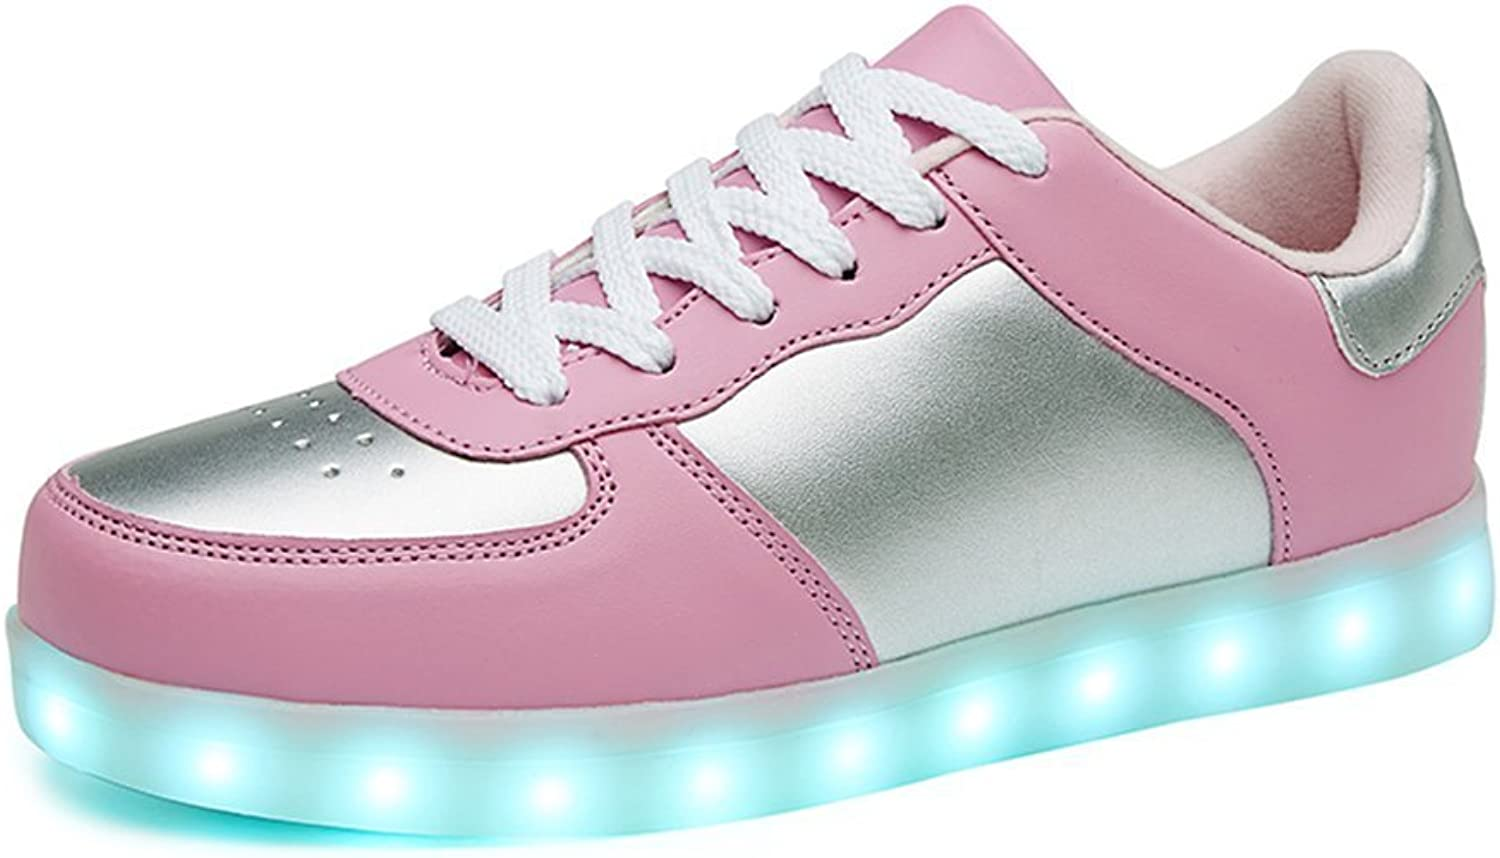 Led Light up shoes 11 colors Flashing Rechargeable Sneakers for Mens Womens Girls Boys